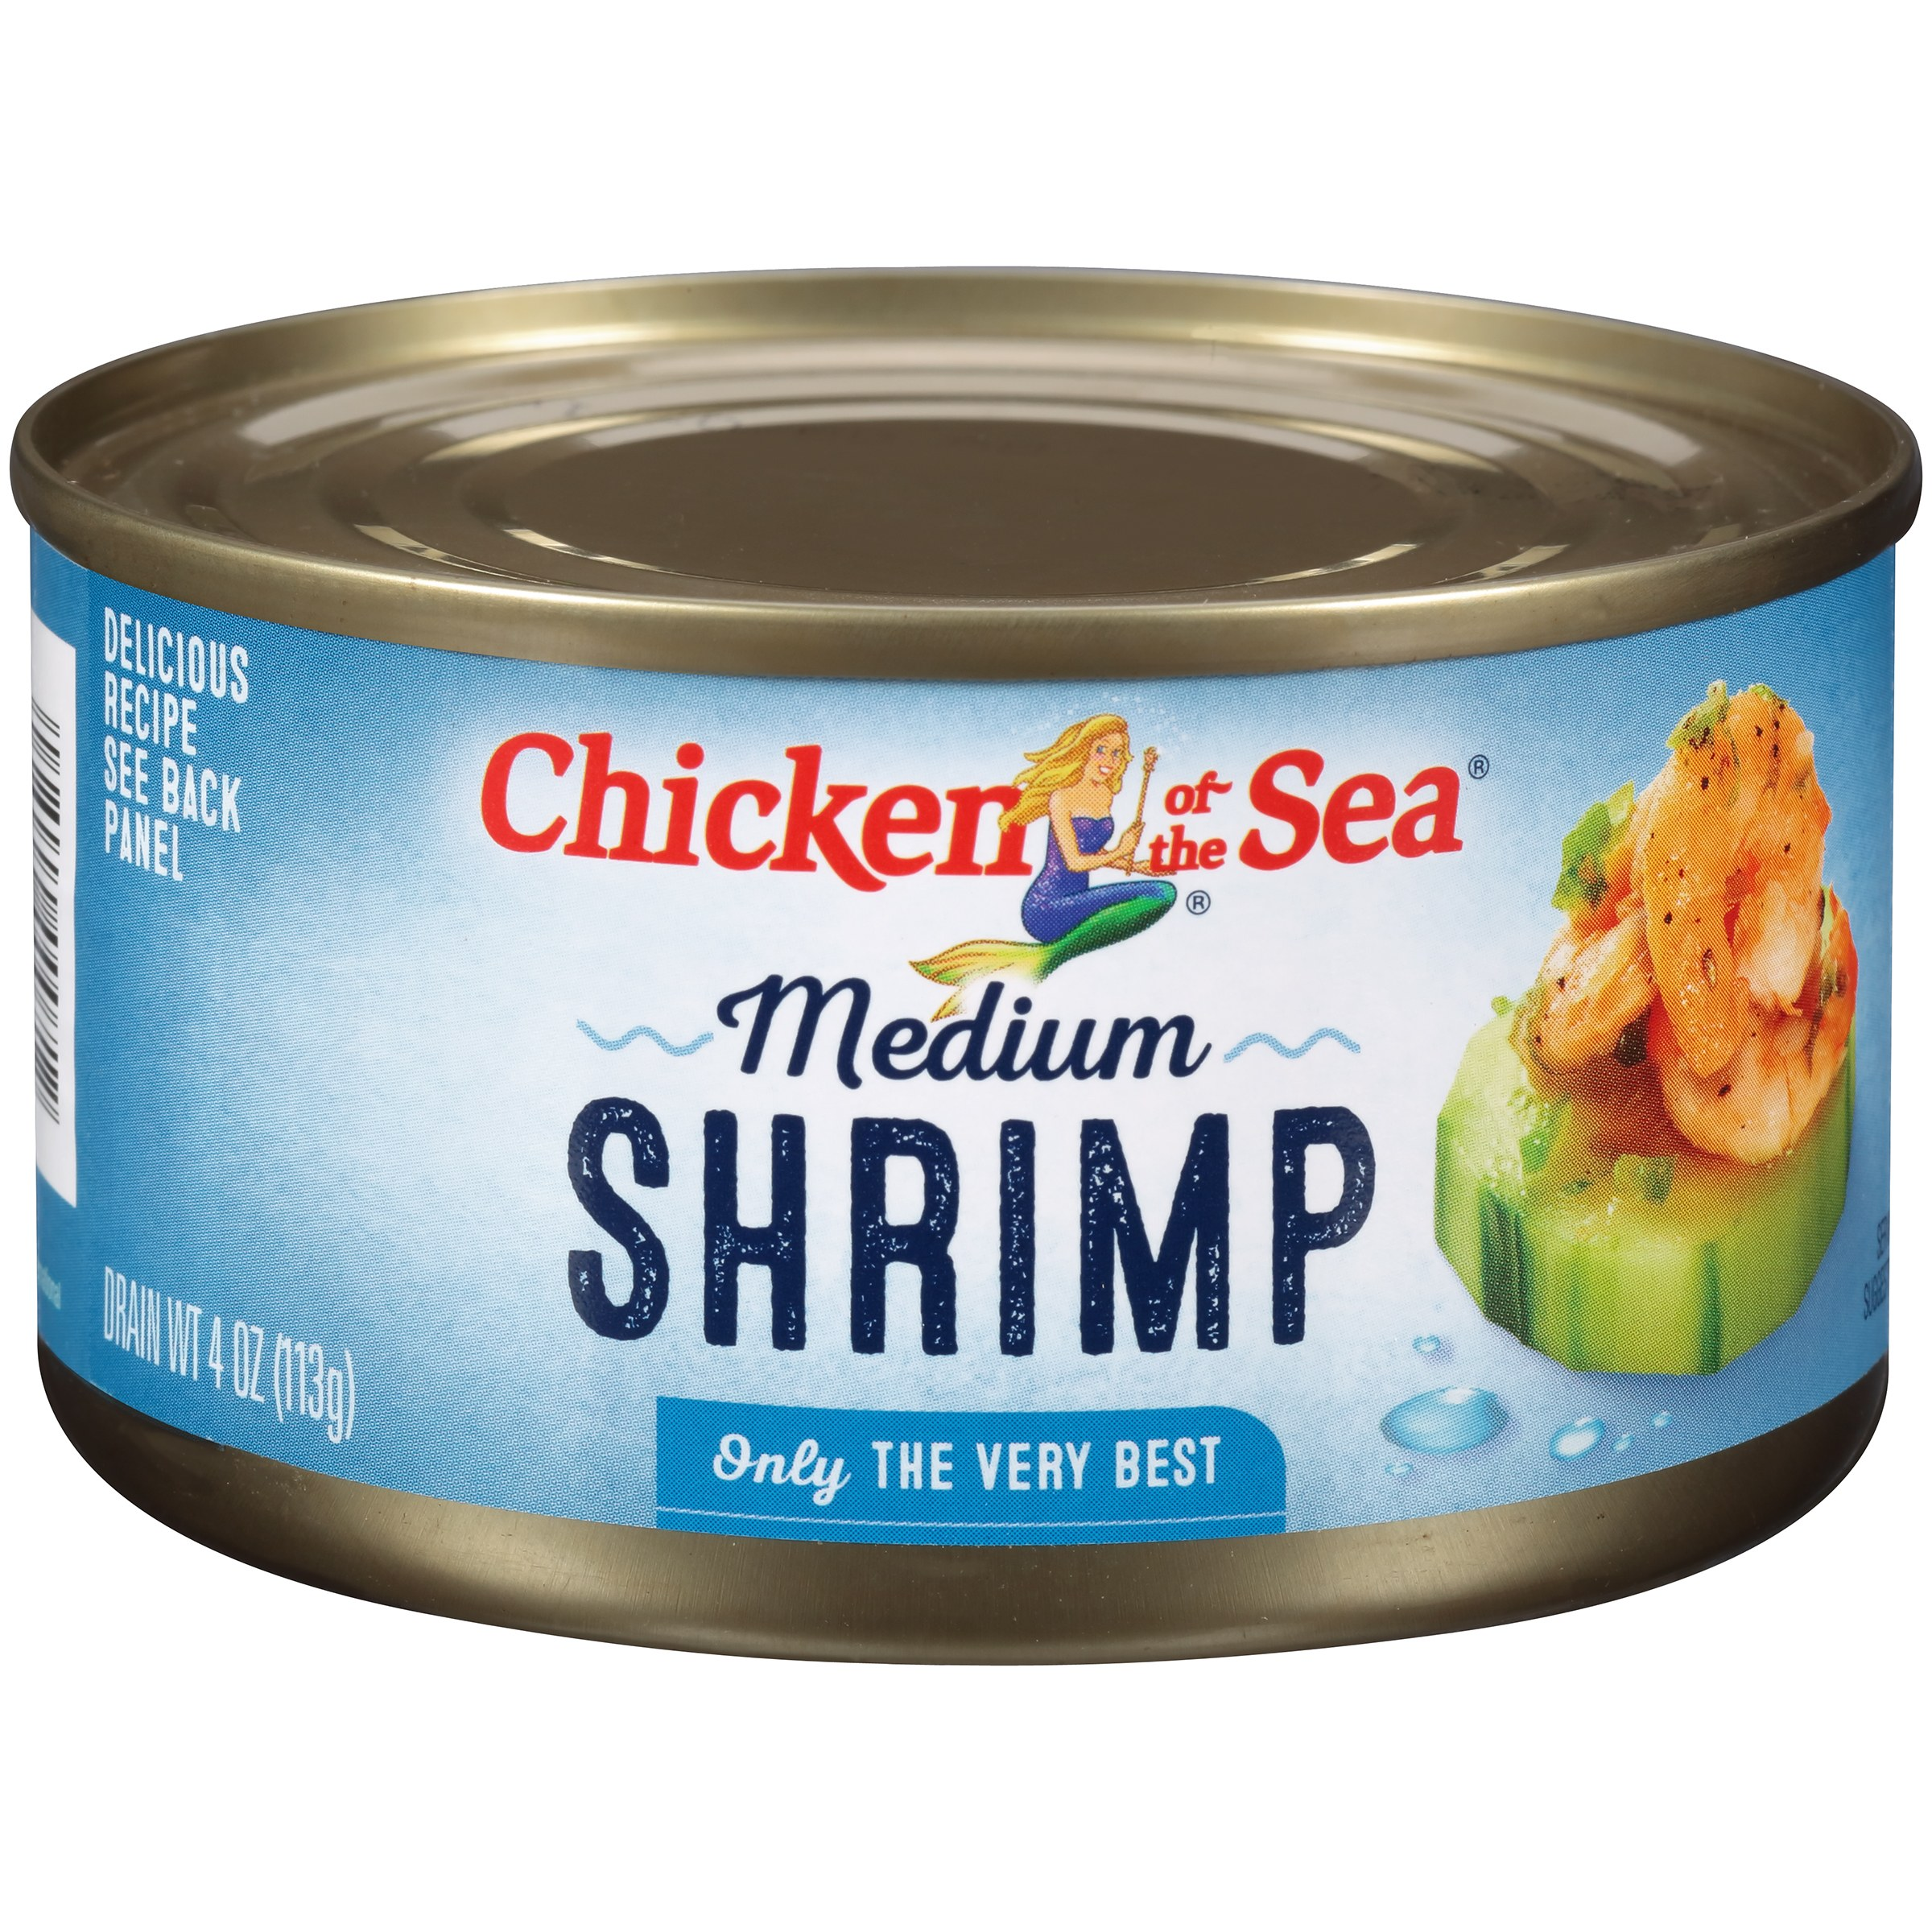 Chicken of the Sea Medium Shrimp, 4 oz by Chicken of The Sea International